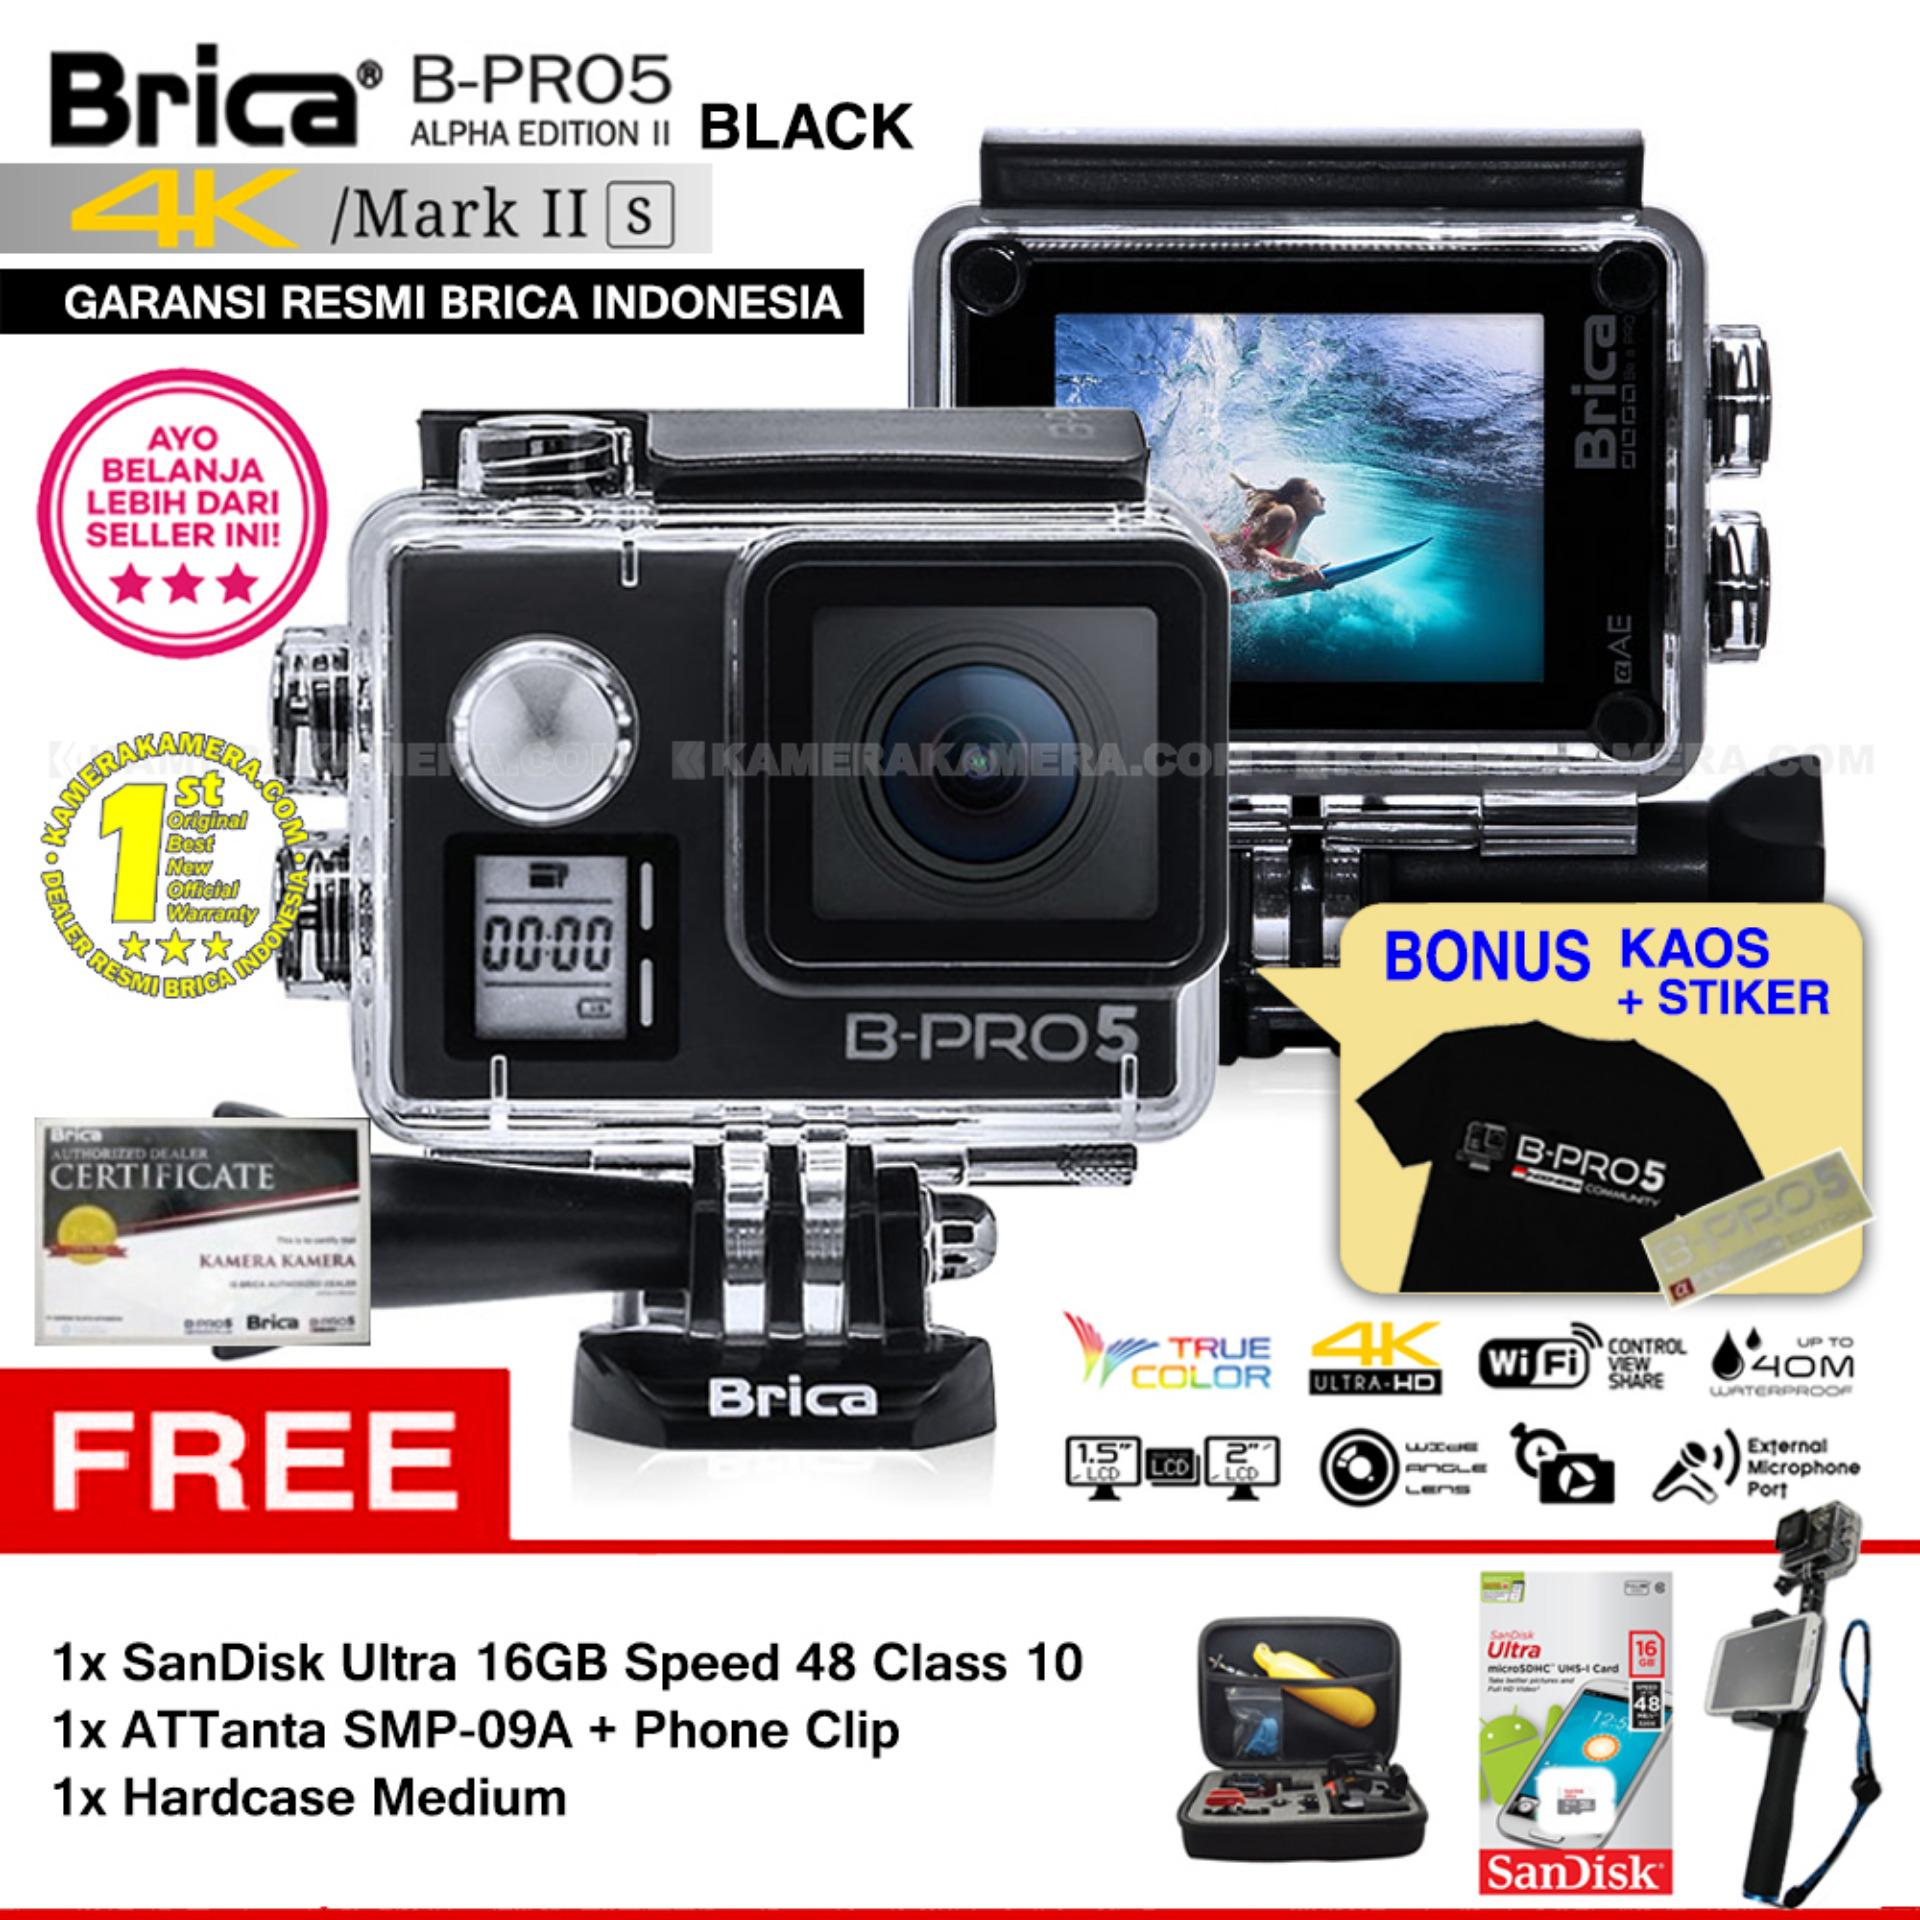 BRICA B-PRO 5 Alpha Edition Mark IIs (AE2s) WIFI 4K BLACK + ATTanta SMP-09A + Phone Clip + SanDisk 16GB Class 10 + Hardcase Medium + Kaos Brica + Sticker BPRO5